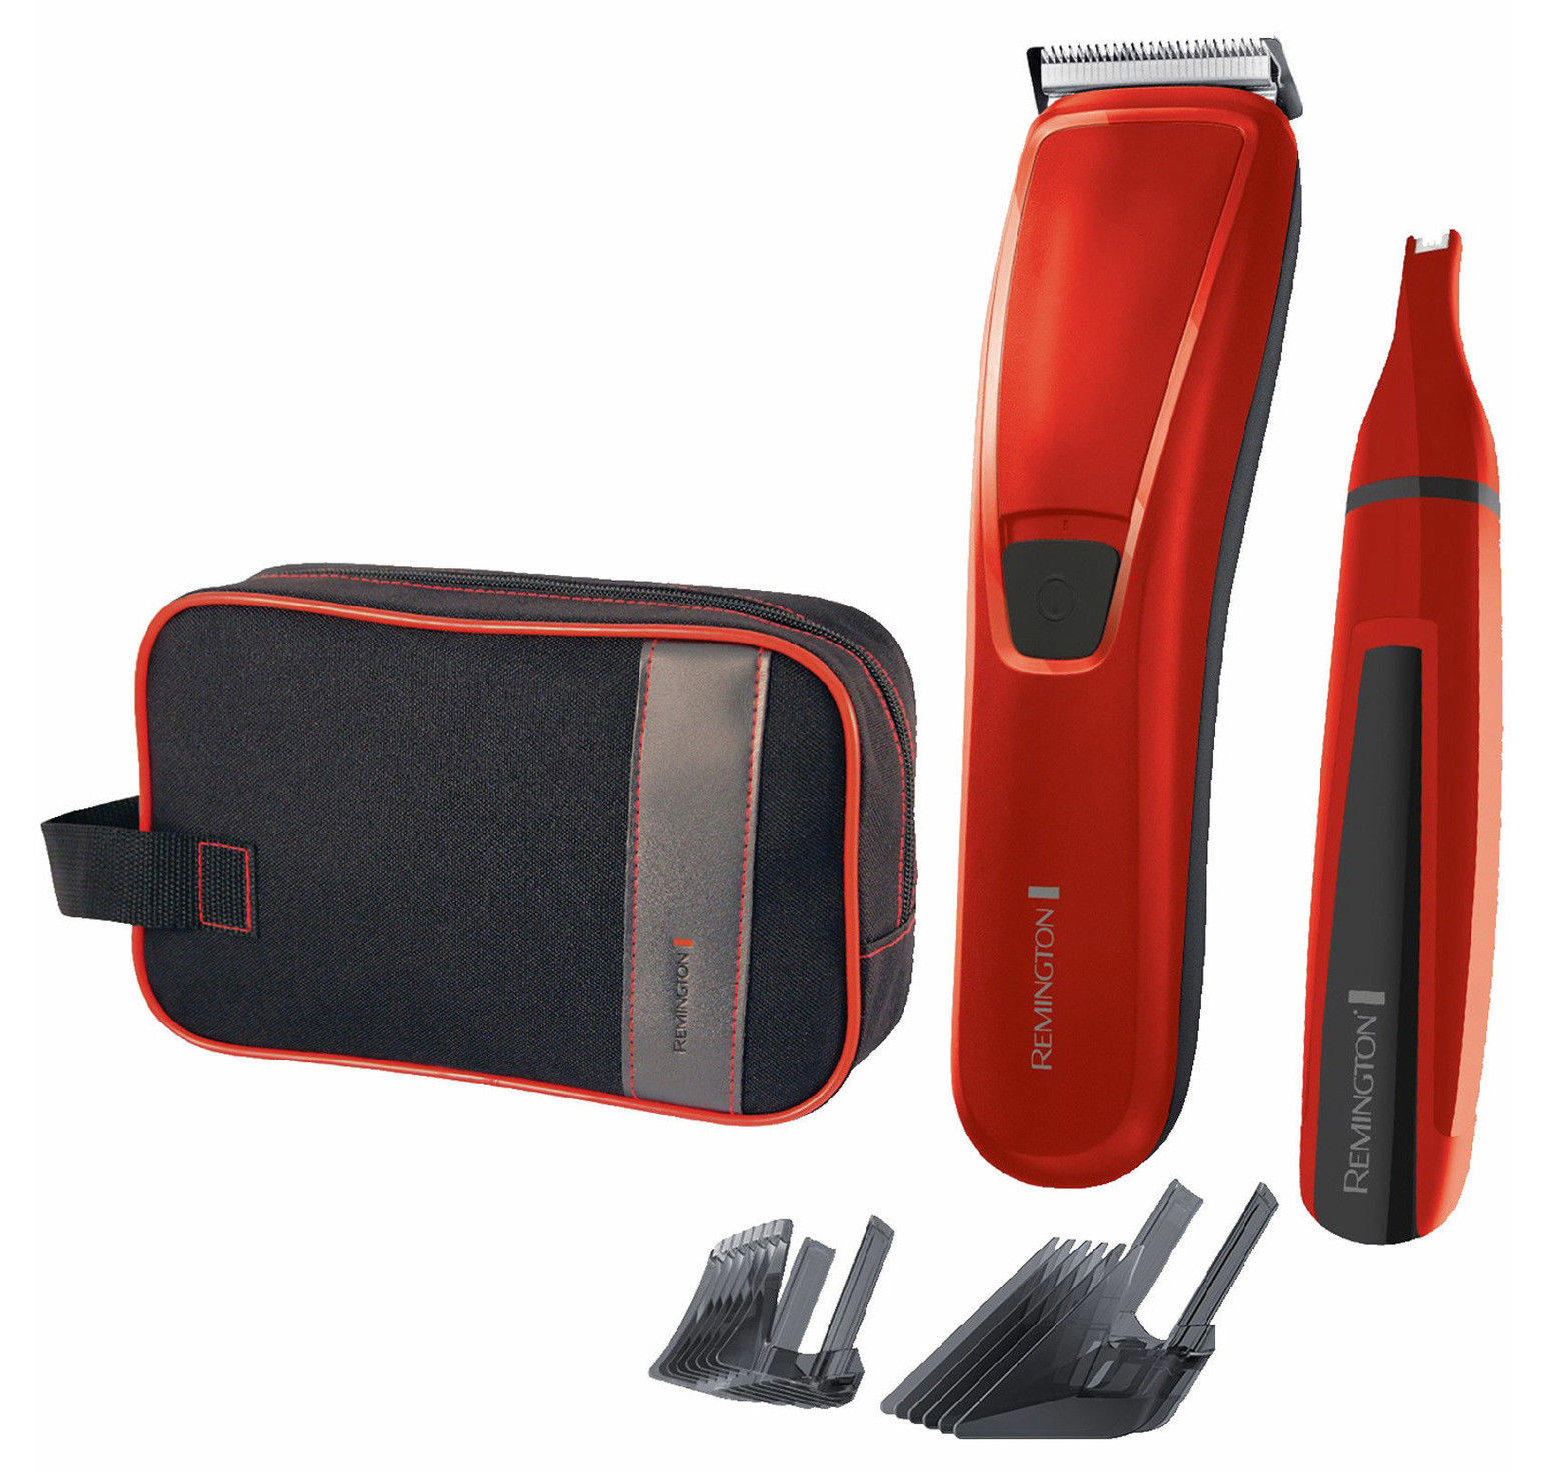 remington precision haircut clipper remington hc5302 limited edition precision cut mens hair 2688